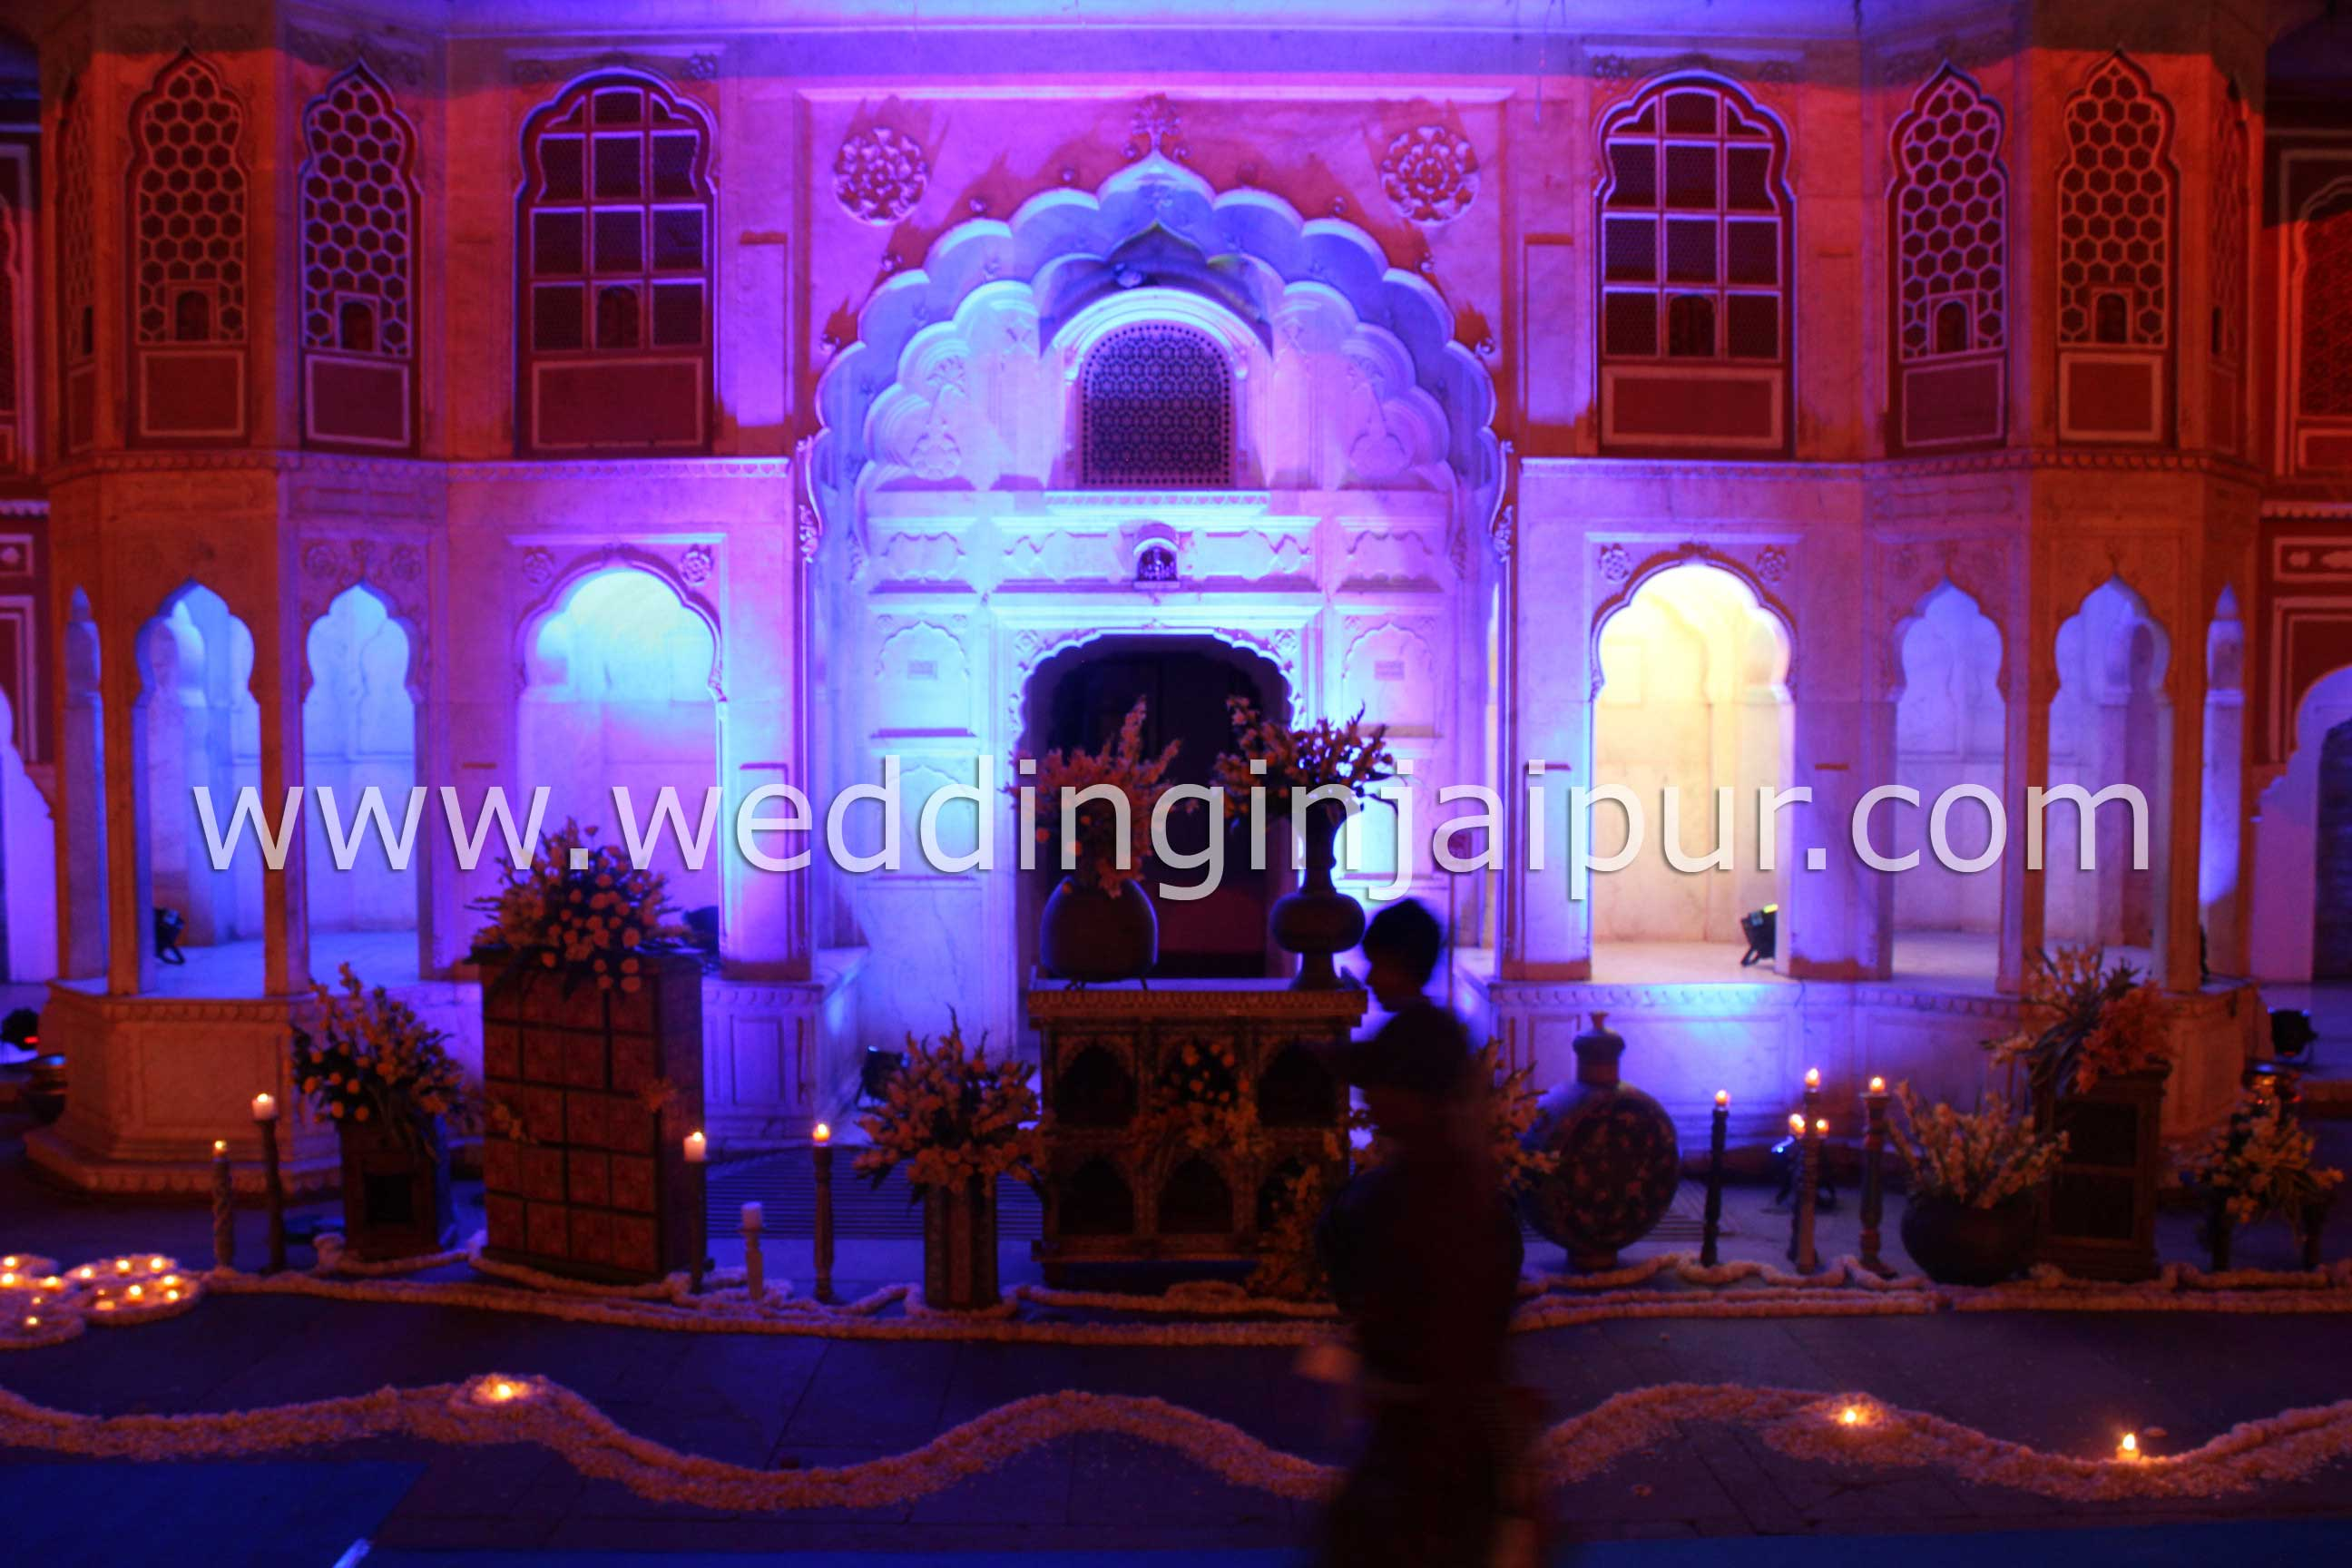 Awesome wedding stage decoration in jaipur wedding wedding venues at jaipur jaipur wedding places junglespirit Gallery